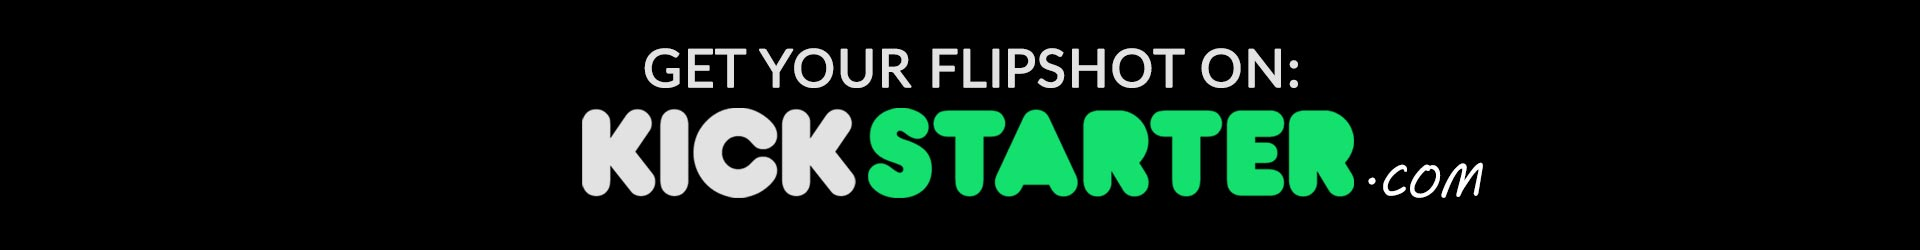 Get your flipshot on Kickstarter.com